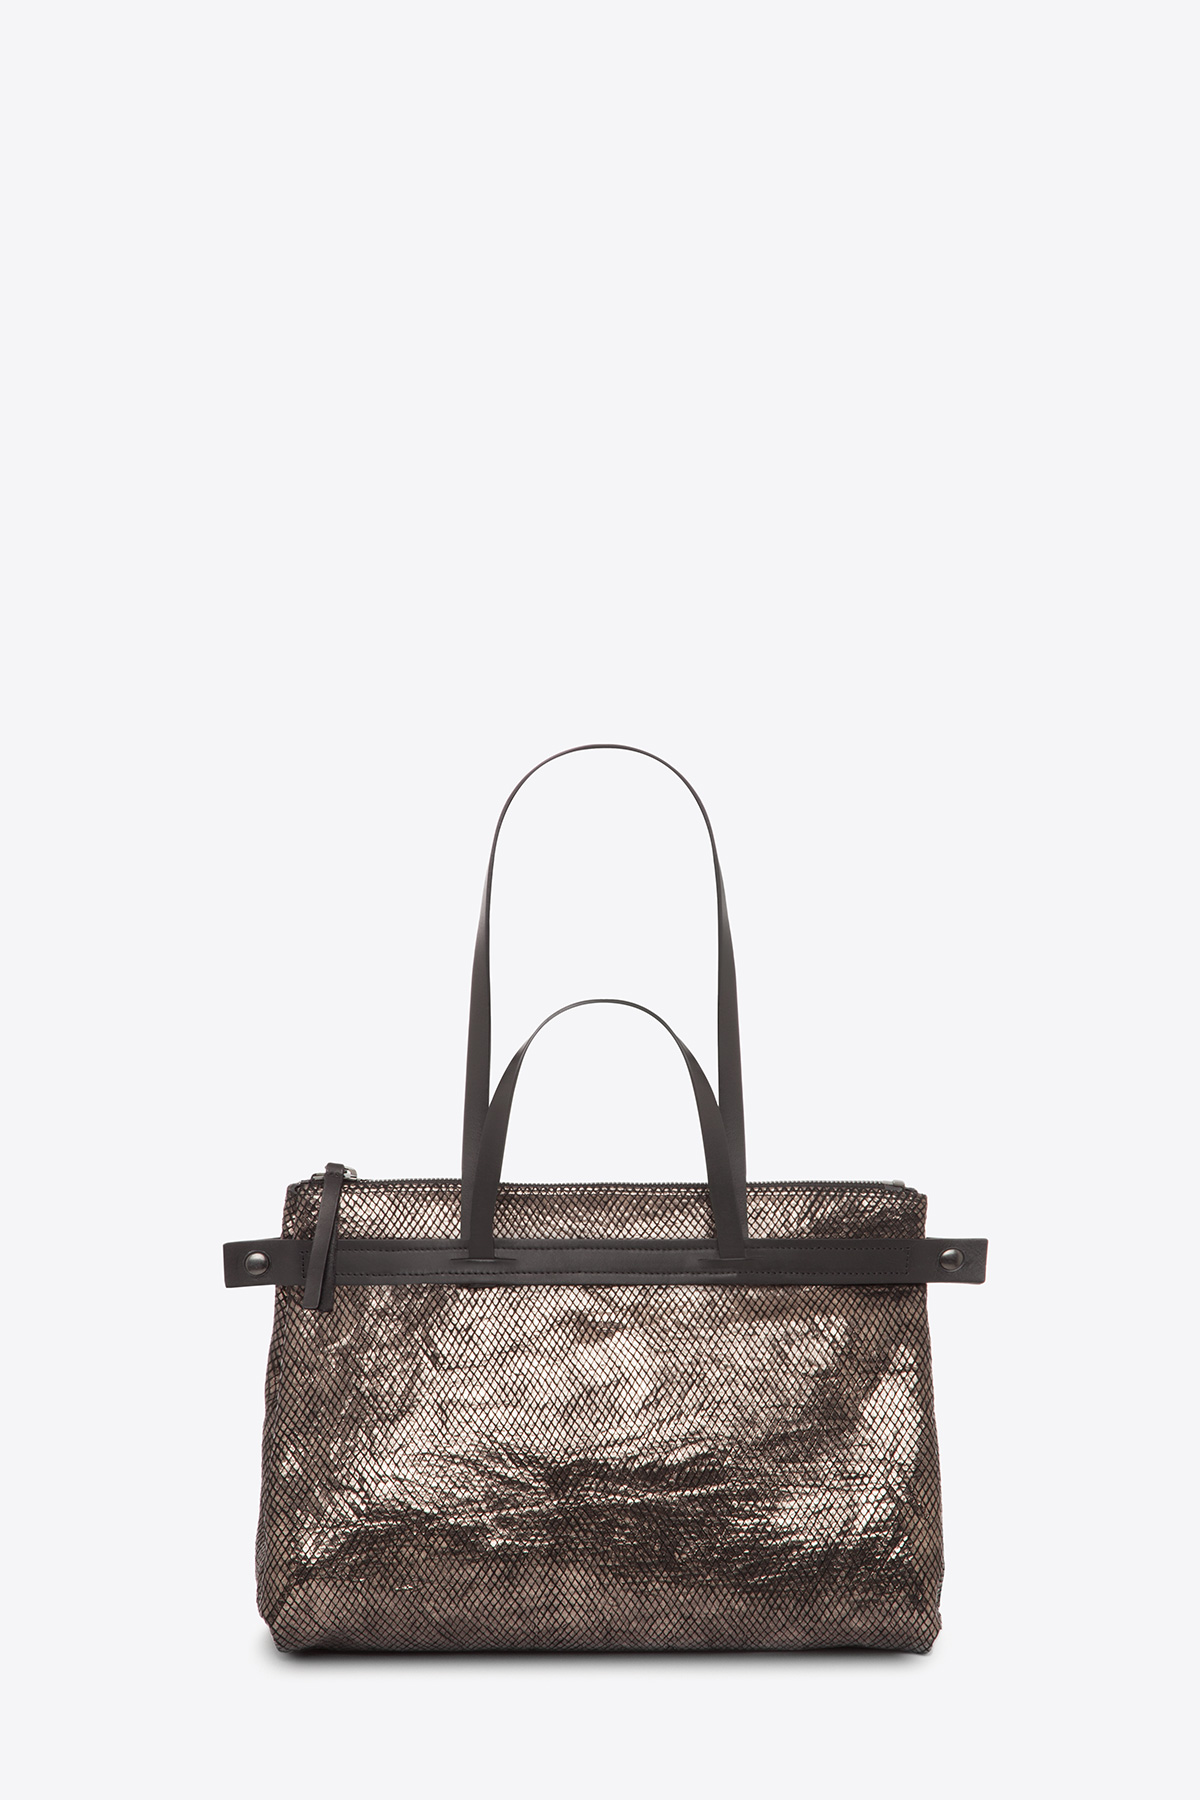 dclr007s-tote-a24-backsnakebronze-front